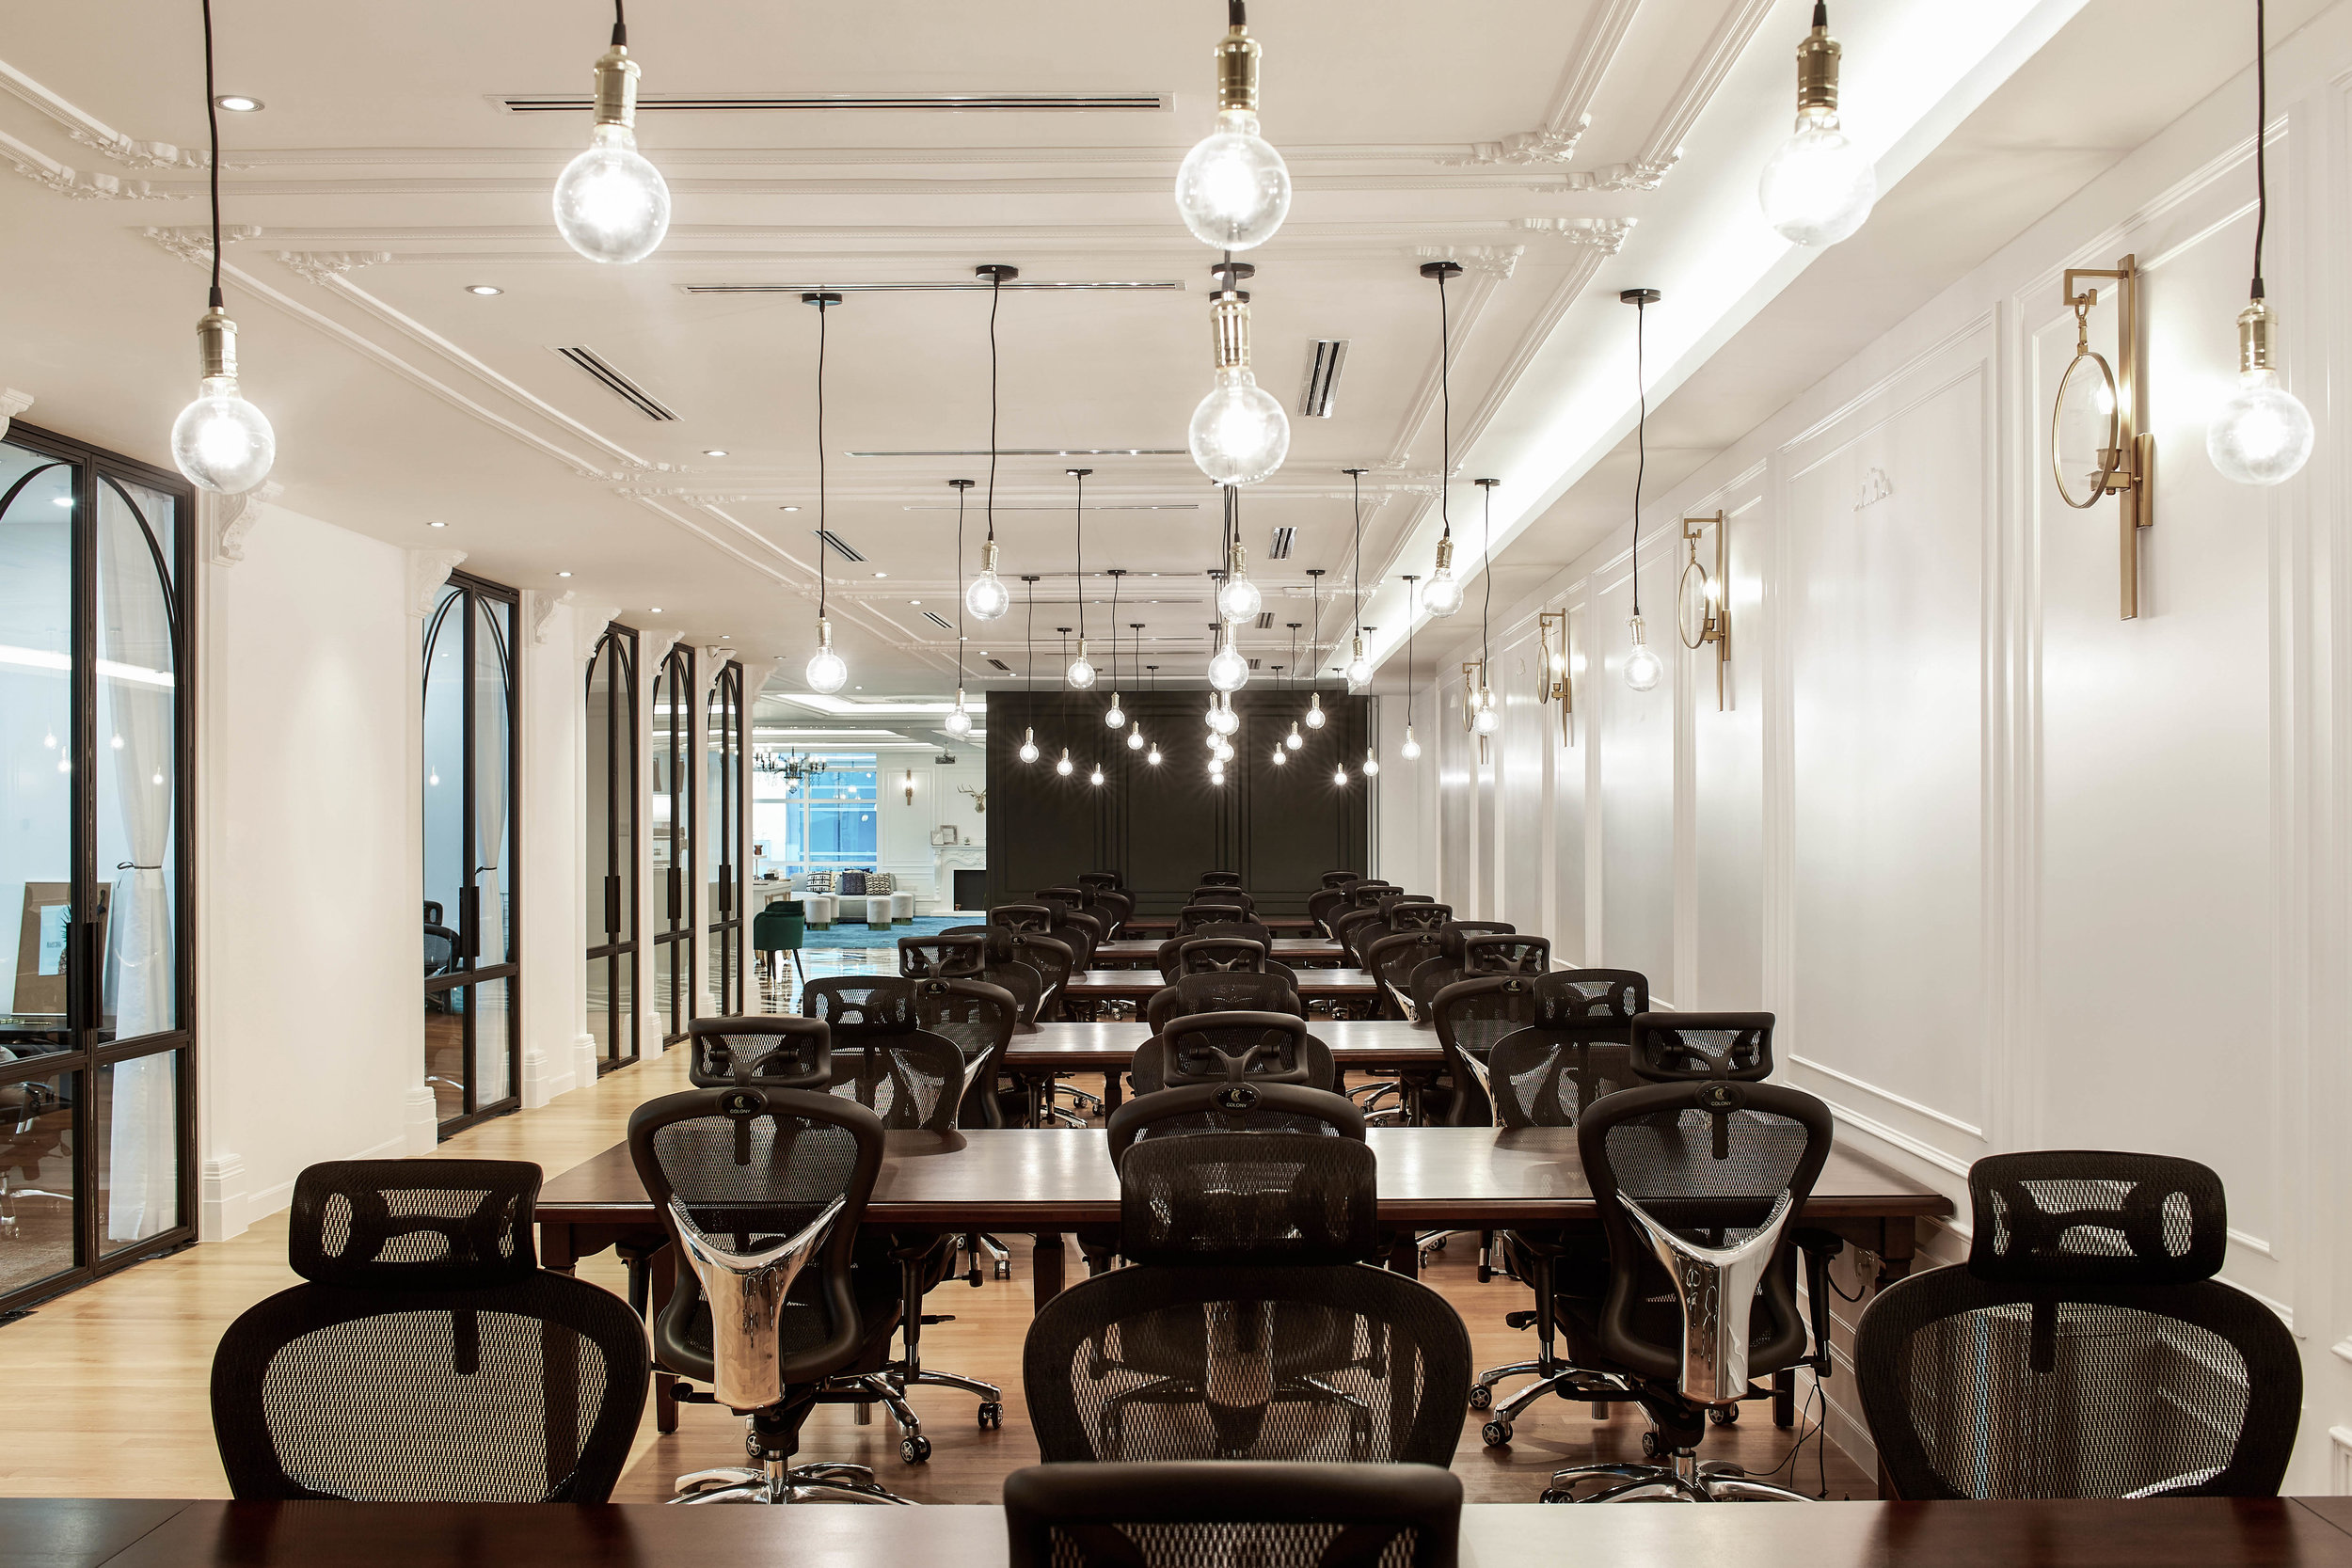 Copy of 20190123 Colony CoWorking Q Sentral1769 copy.jpg